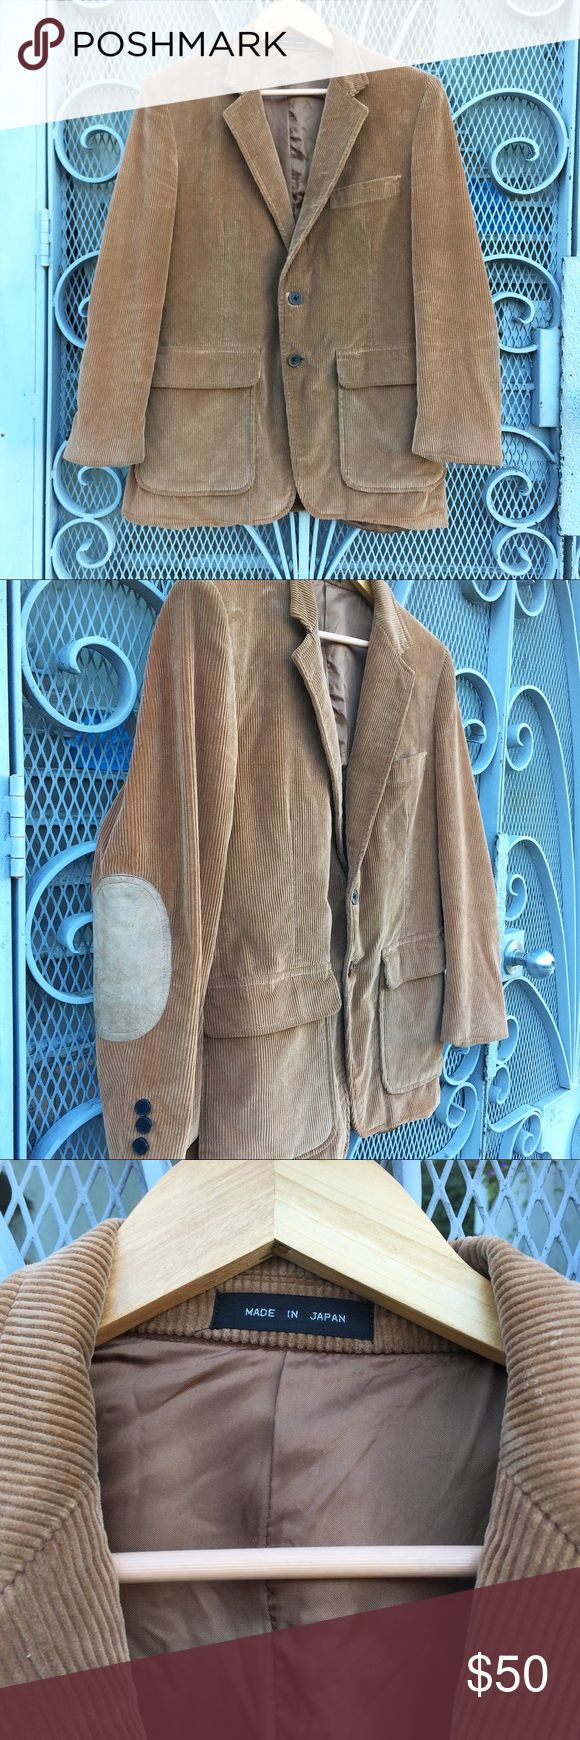 "Vintage Japanese corduroy elbow patch jacket Channel your inner professor in this vintage corduroy jacket with elbow patches. Made in Japan. Fits about a M. 21"" pit to pit and 29"" long. No tryons or trades but offers welcome Vintage Jackets & Coats"